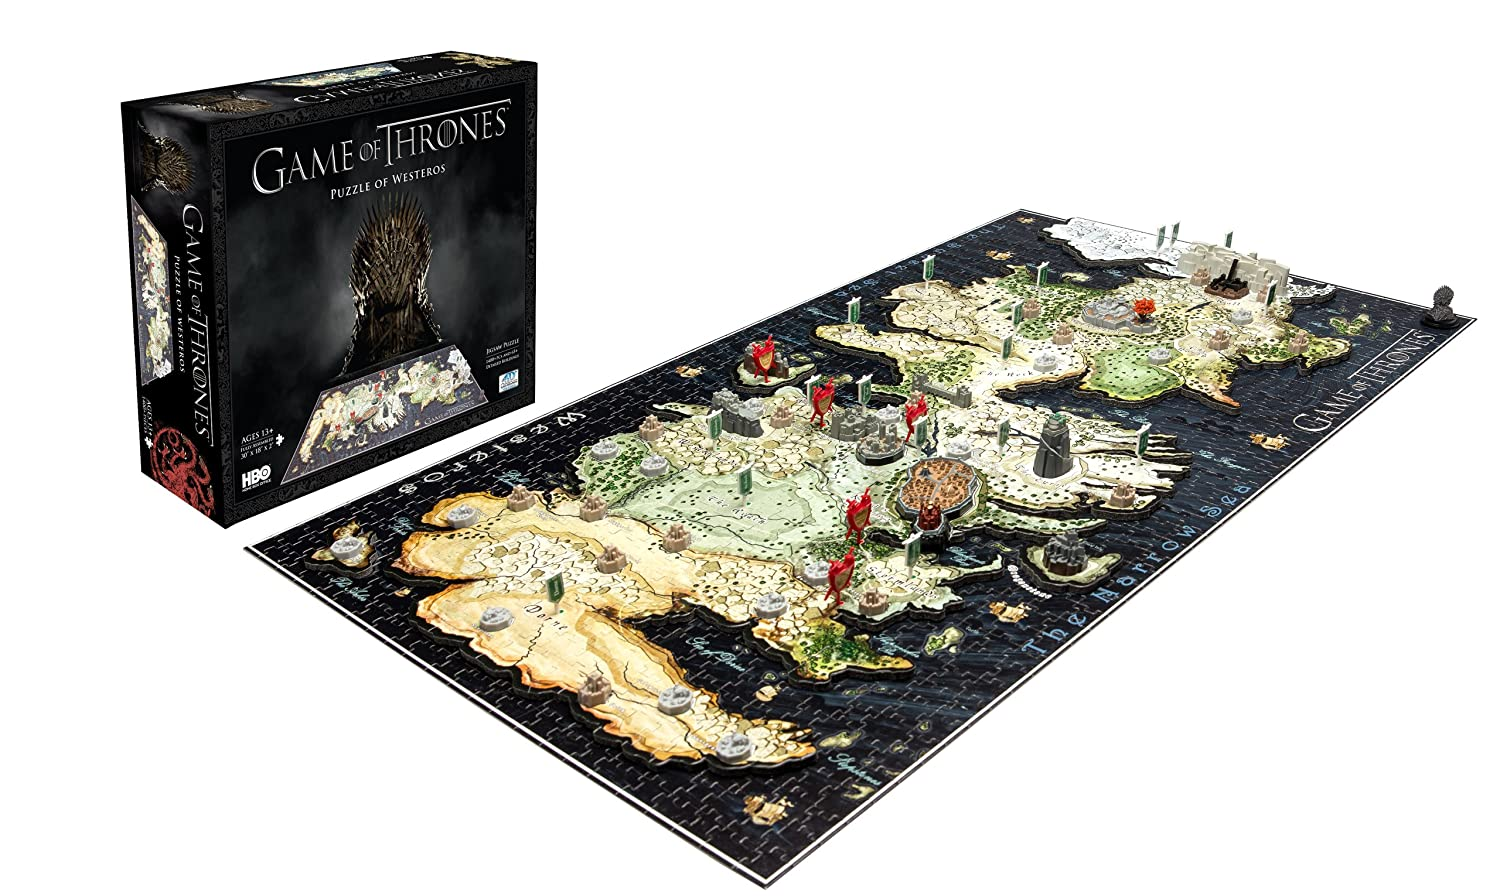 4D Cityscape Game of Thrones: Westeros Puzzle on crown lands map game of thrones, detailed map of westeros game of thrones, google map game of thrones,